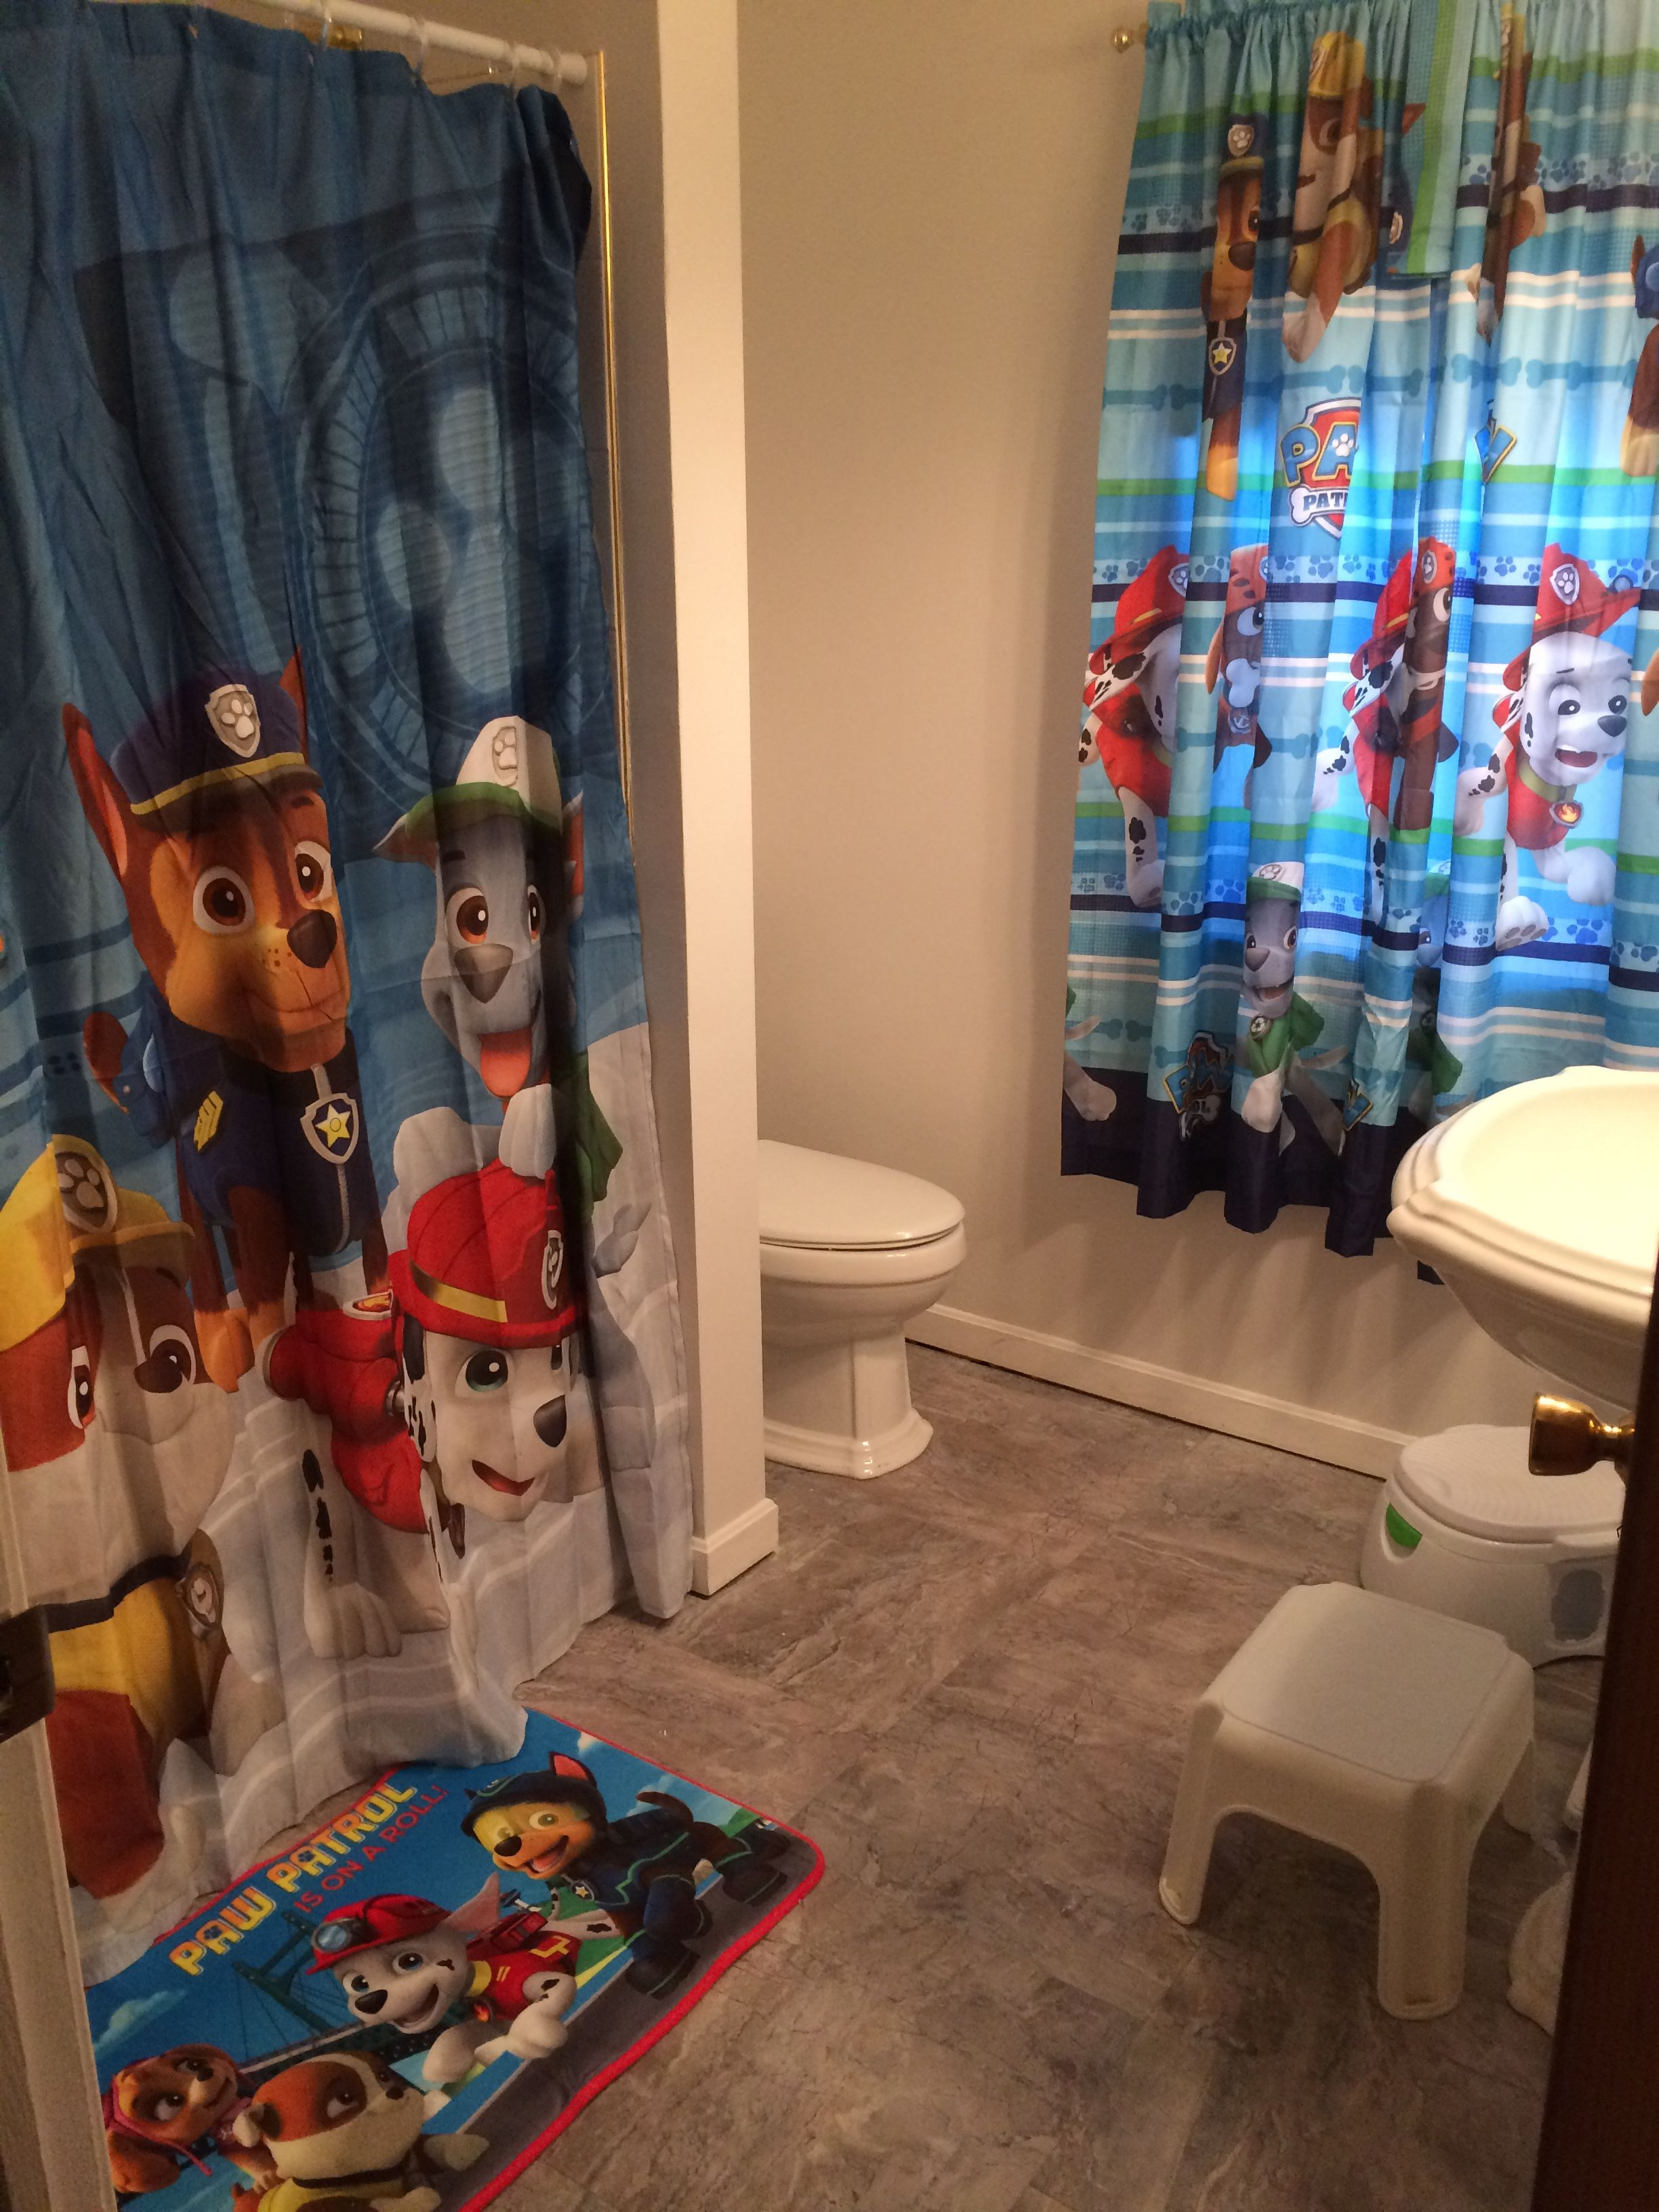 Paw Patrol Bathroom Decor Decor Purchased At Walmart Com Boys Bathroom Decor Kid Bathroom Decor Paw Patrol Bedroom